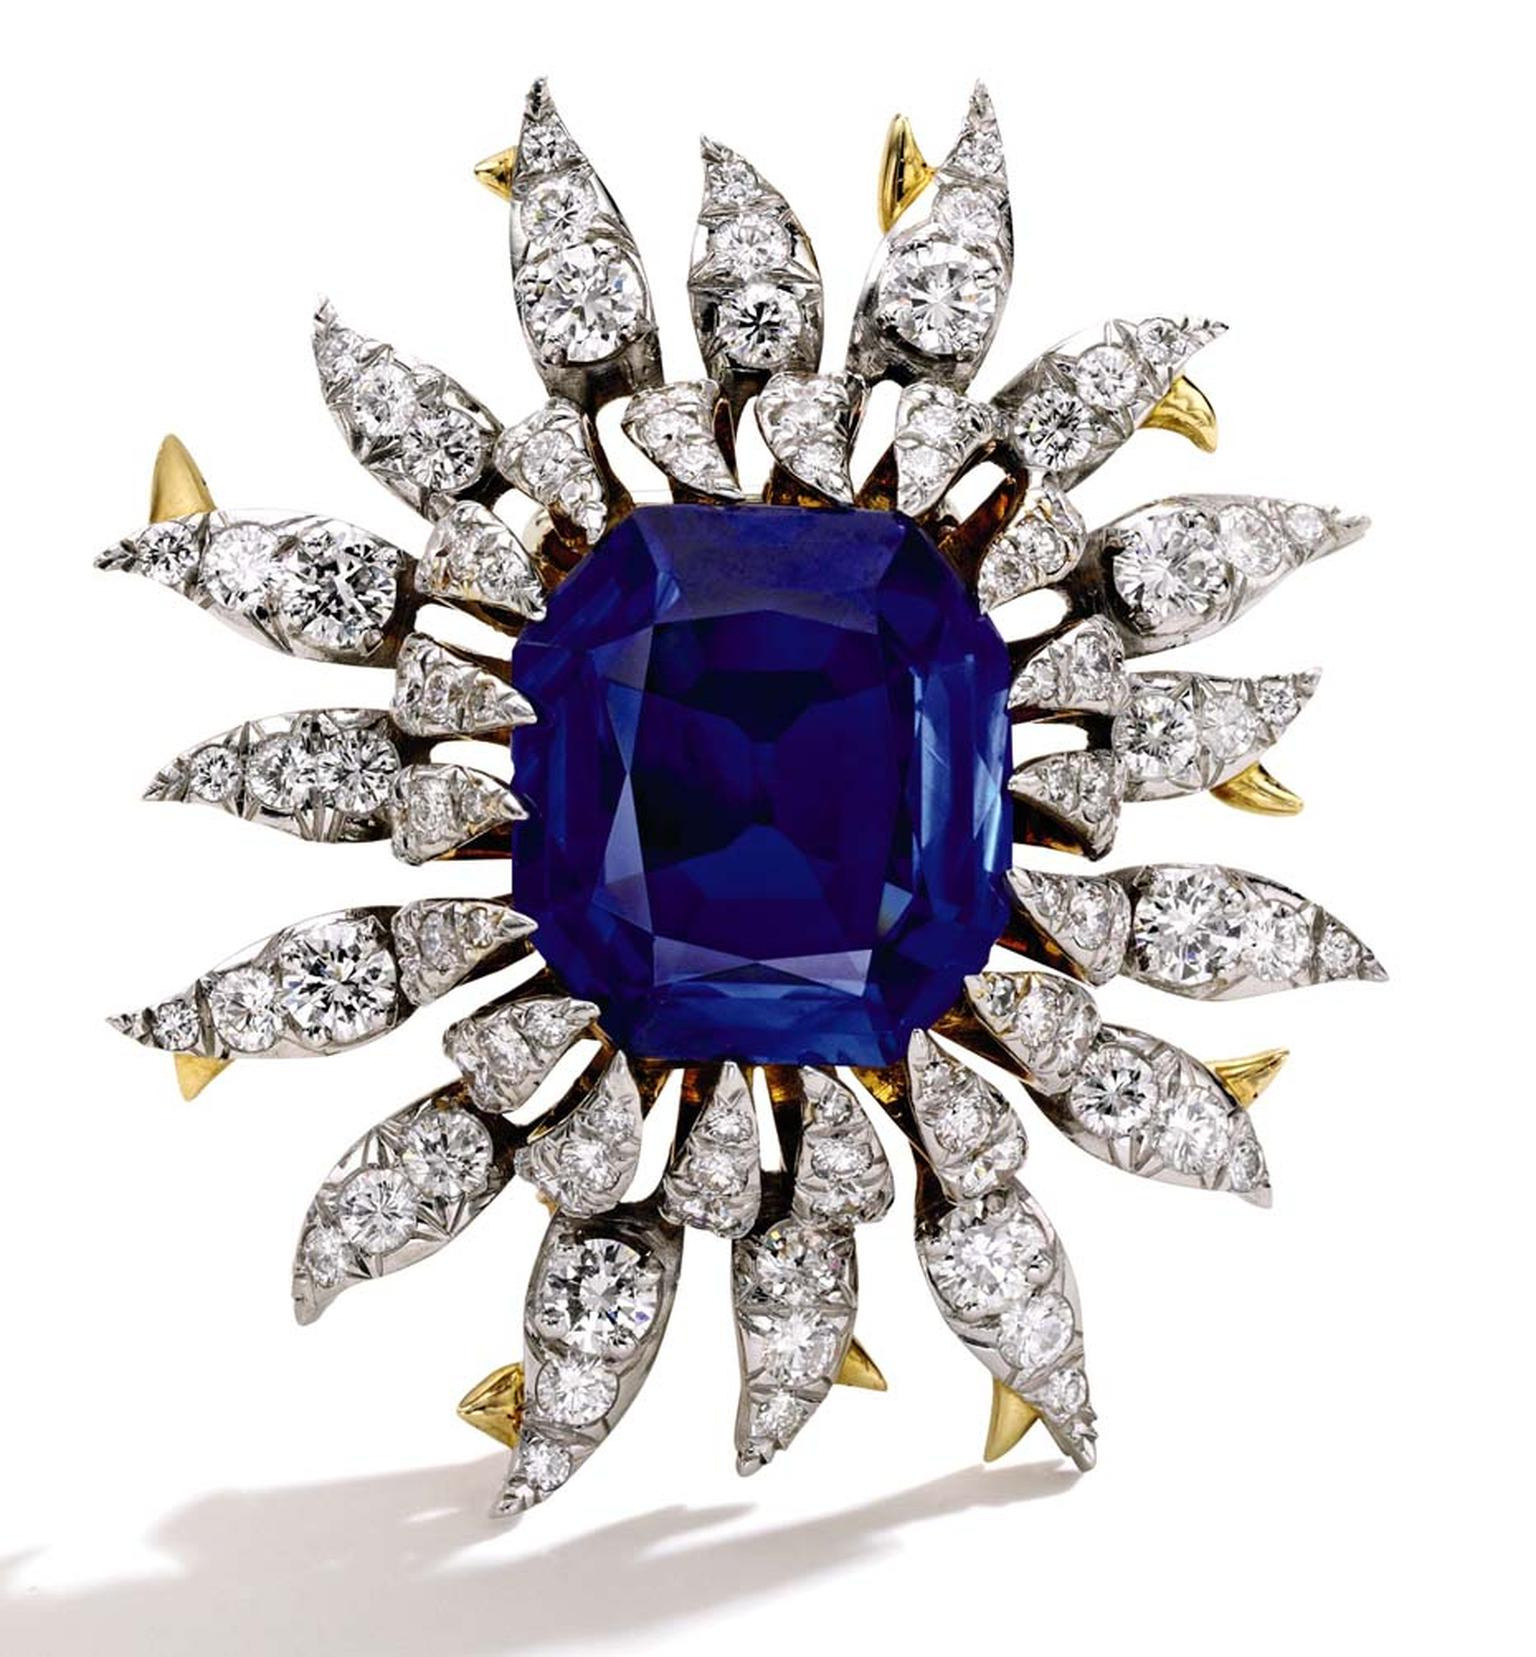 Tiffany & Co. diamond and Kashmir sapphire brooch in gold and platinum, designed by Jean Schlumberger and dating back to the 1960s. Part of the late Bunny Mellon's private collection and set with a 17ct sapphire, it sold to an online bidder for $1 million